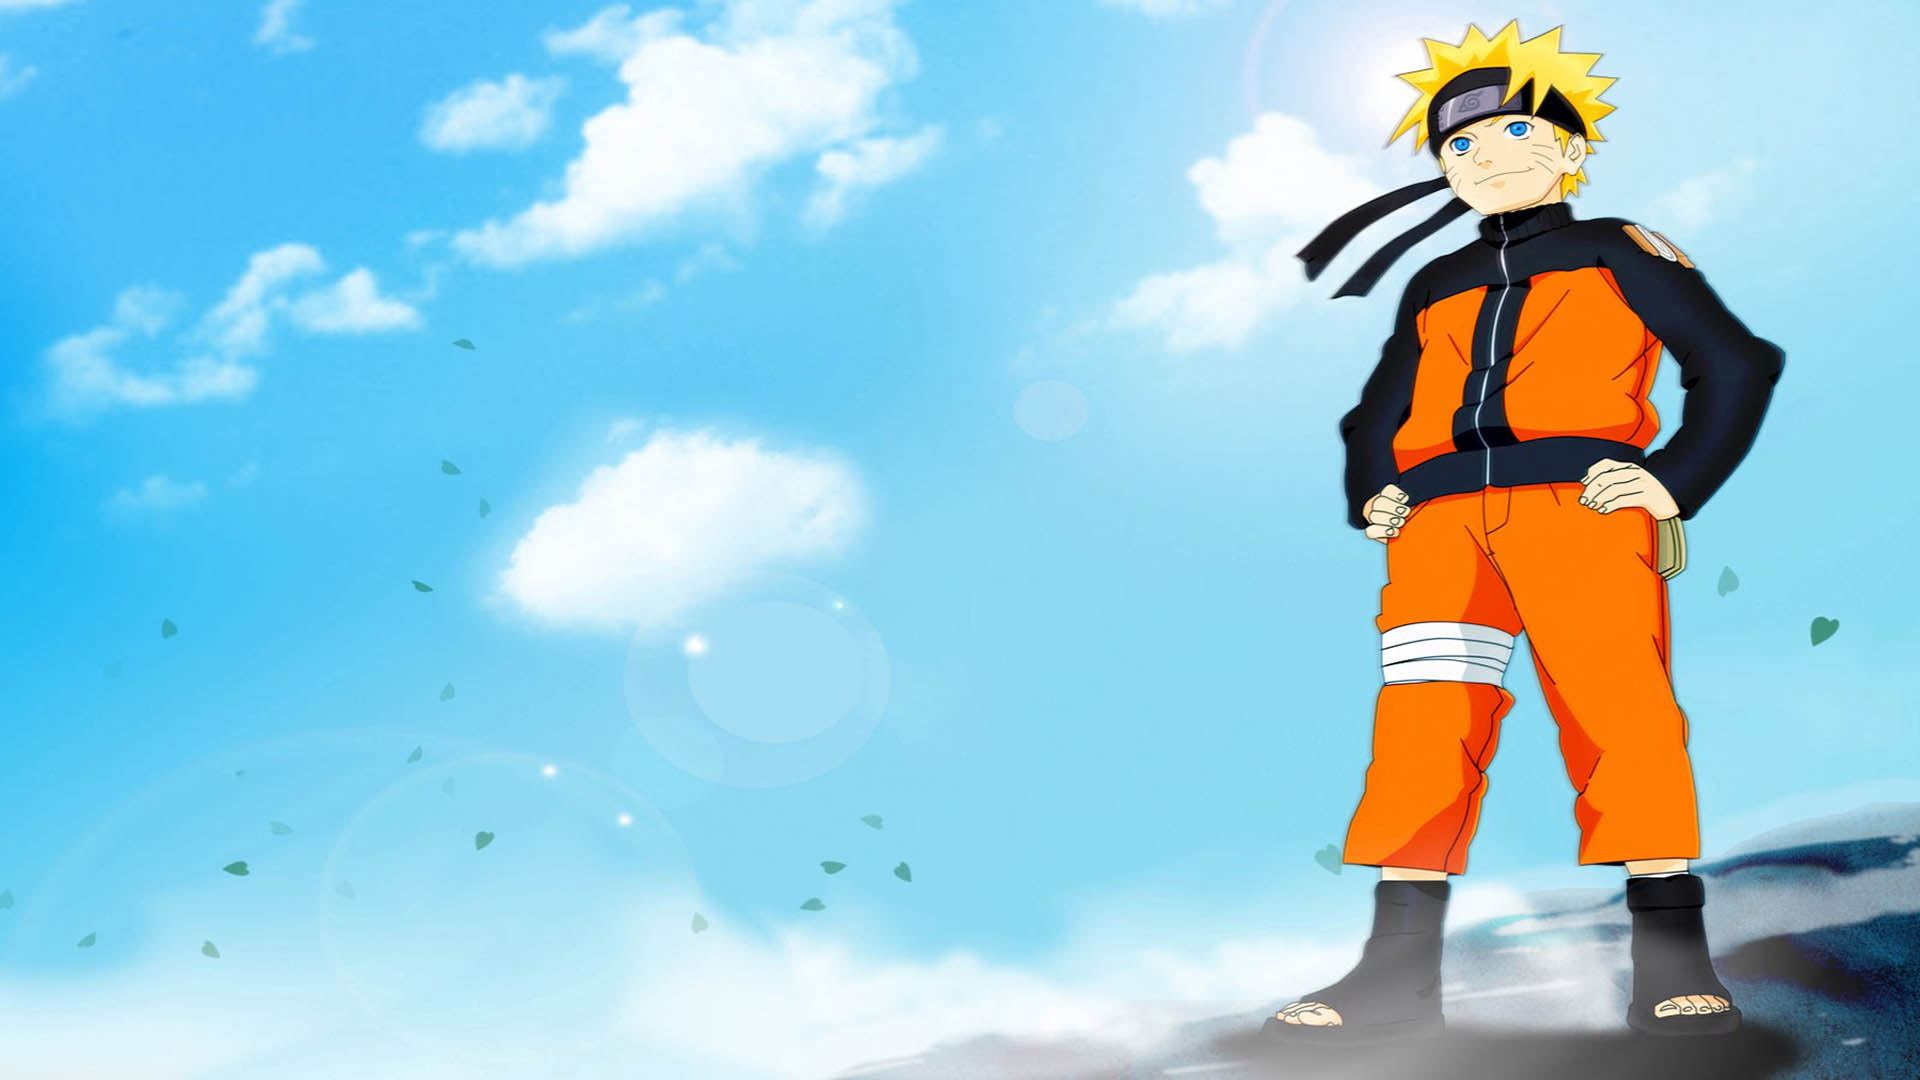 Naruto HD Wallpapers 1366x768 - WallpaperSafari